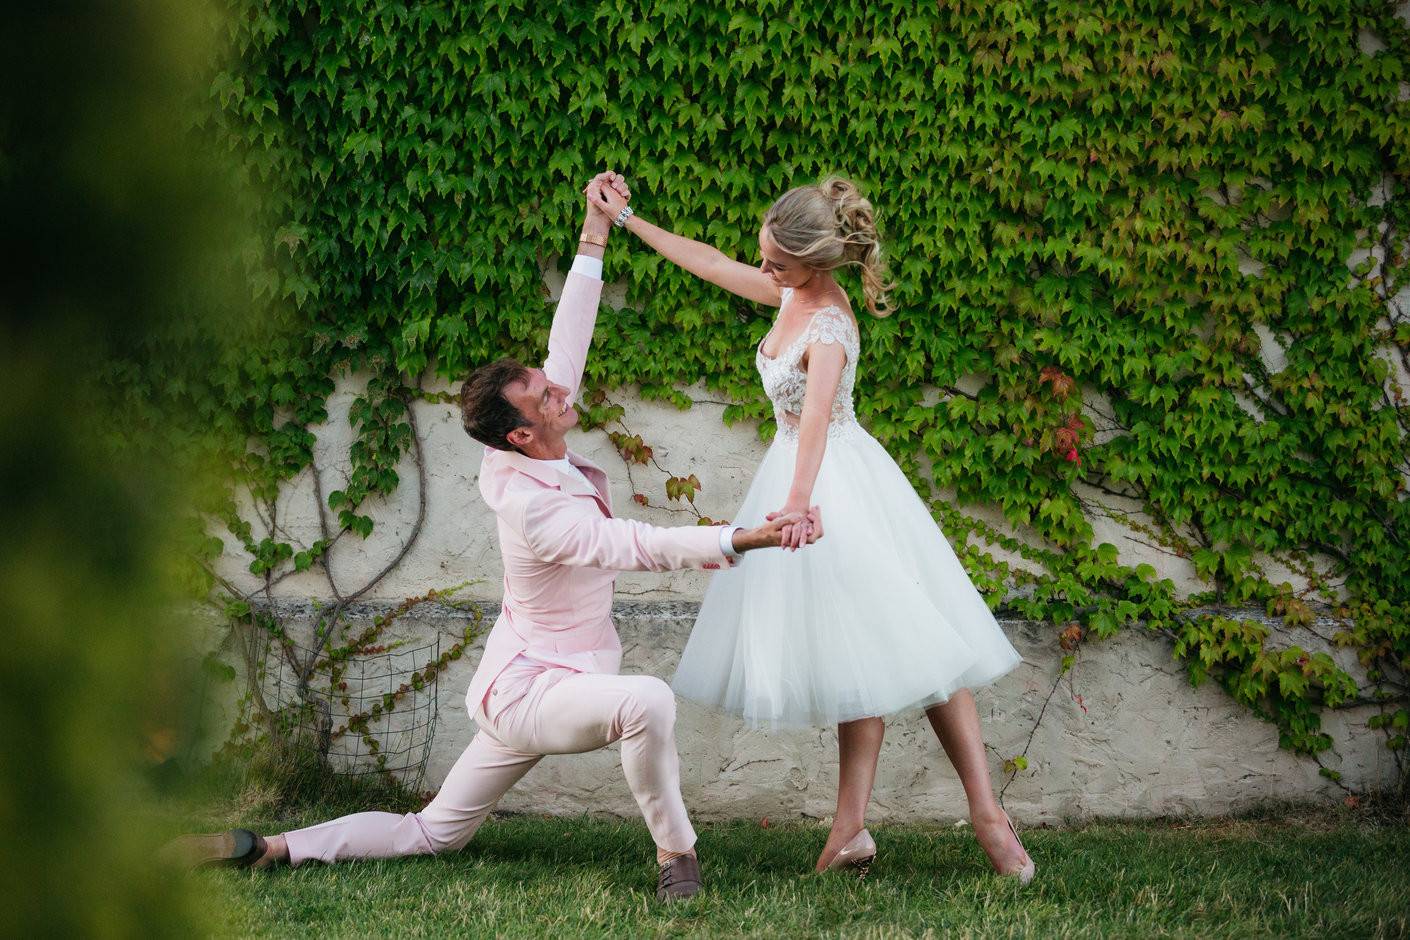 ballet, ballet wedding, wedding dance, wedding dance inpso, classy wedding